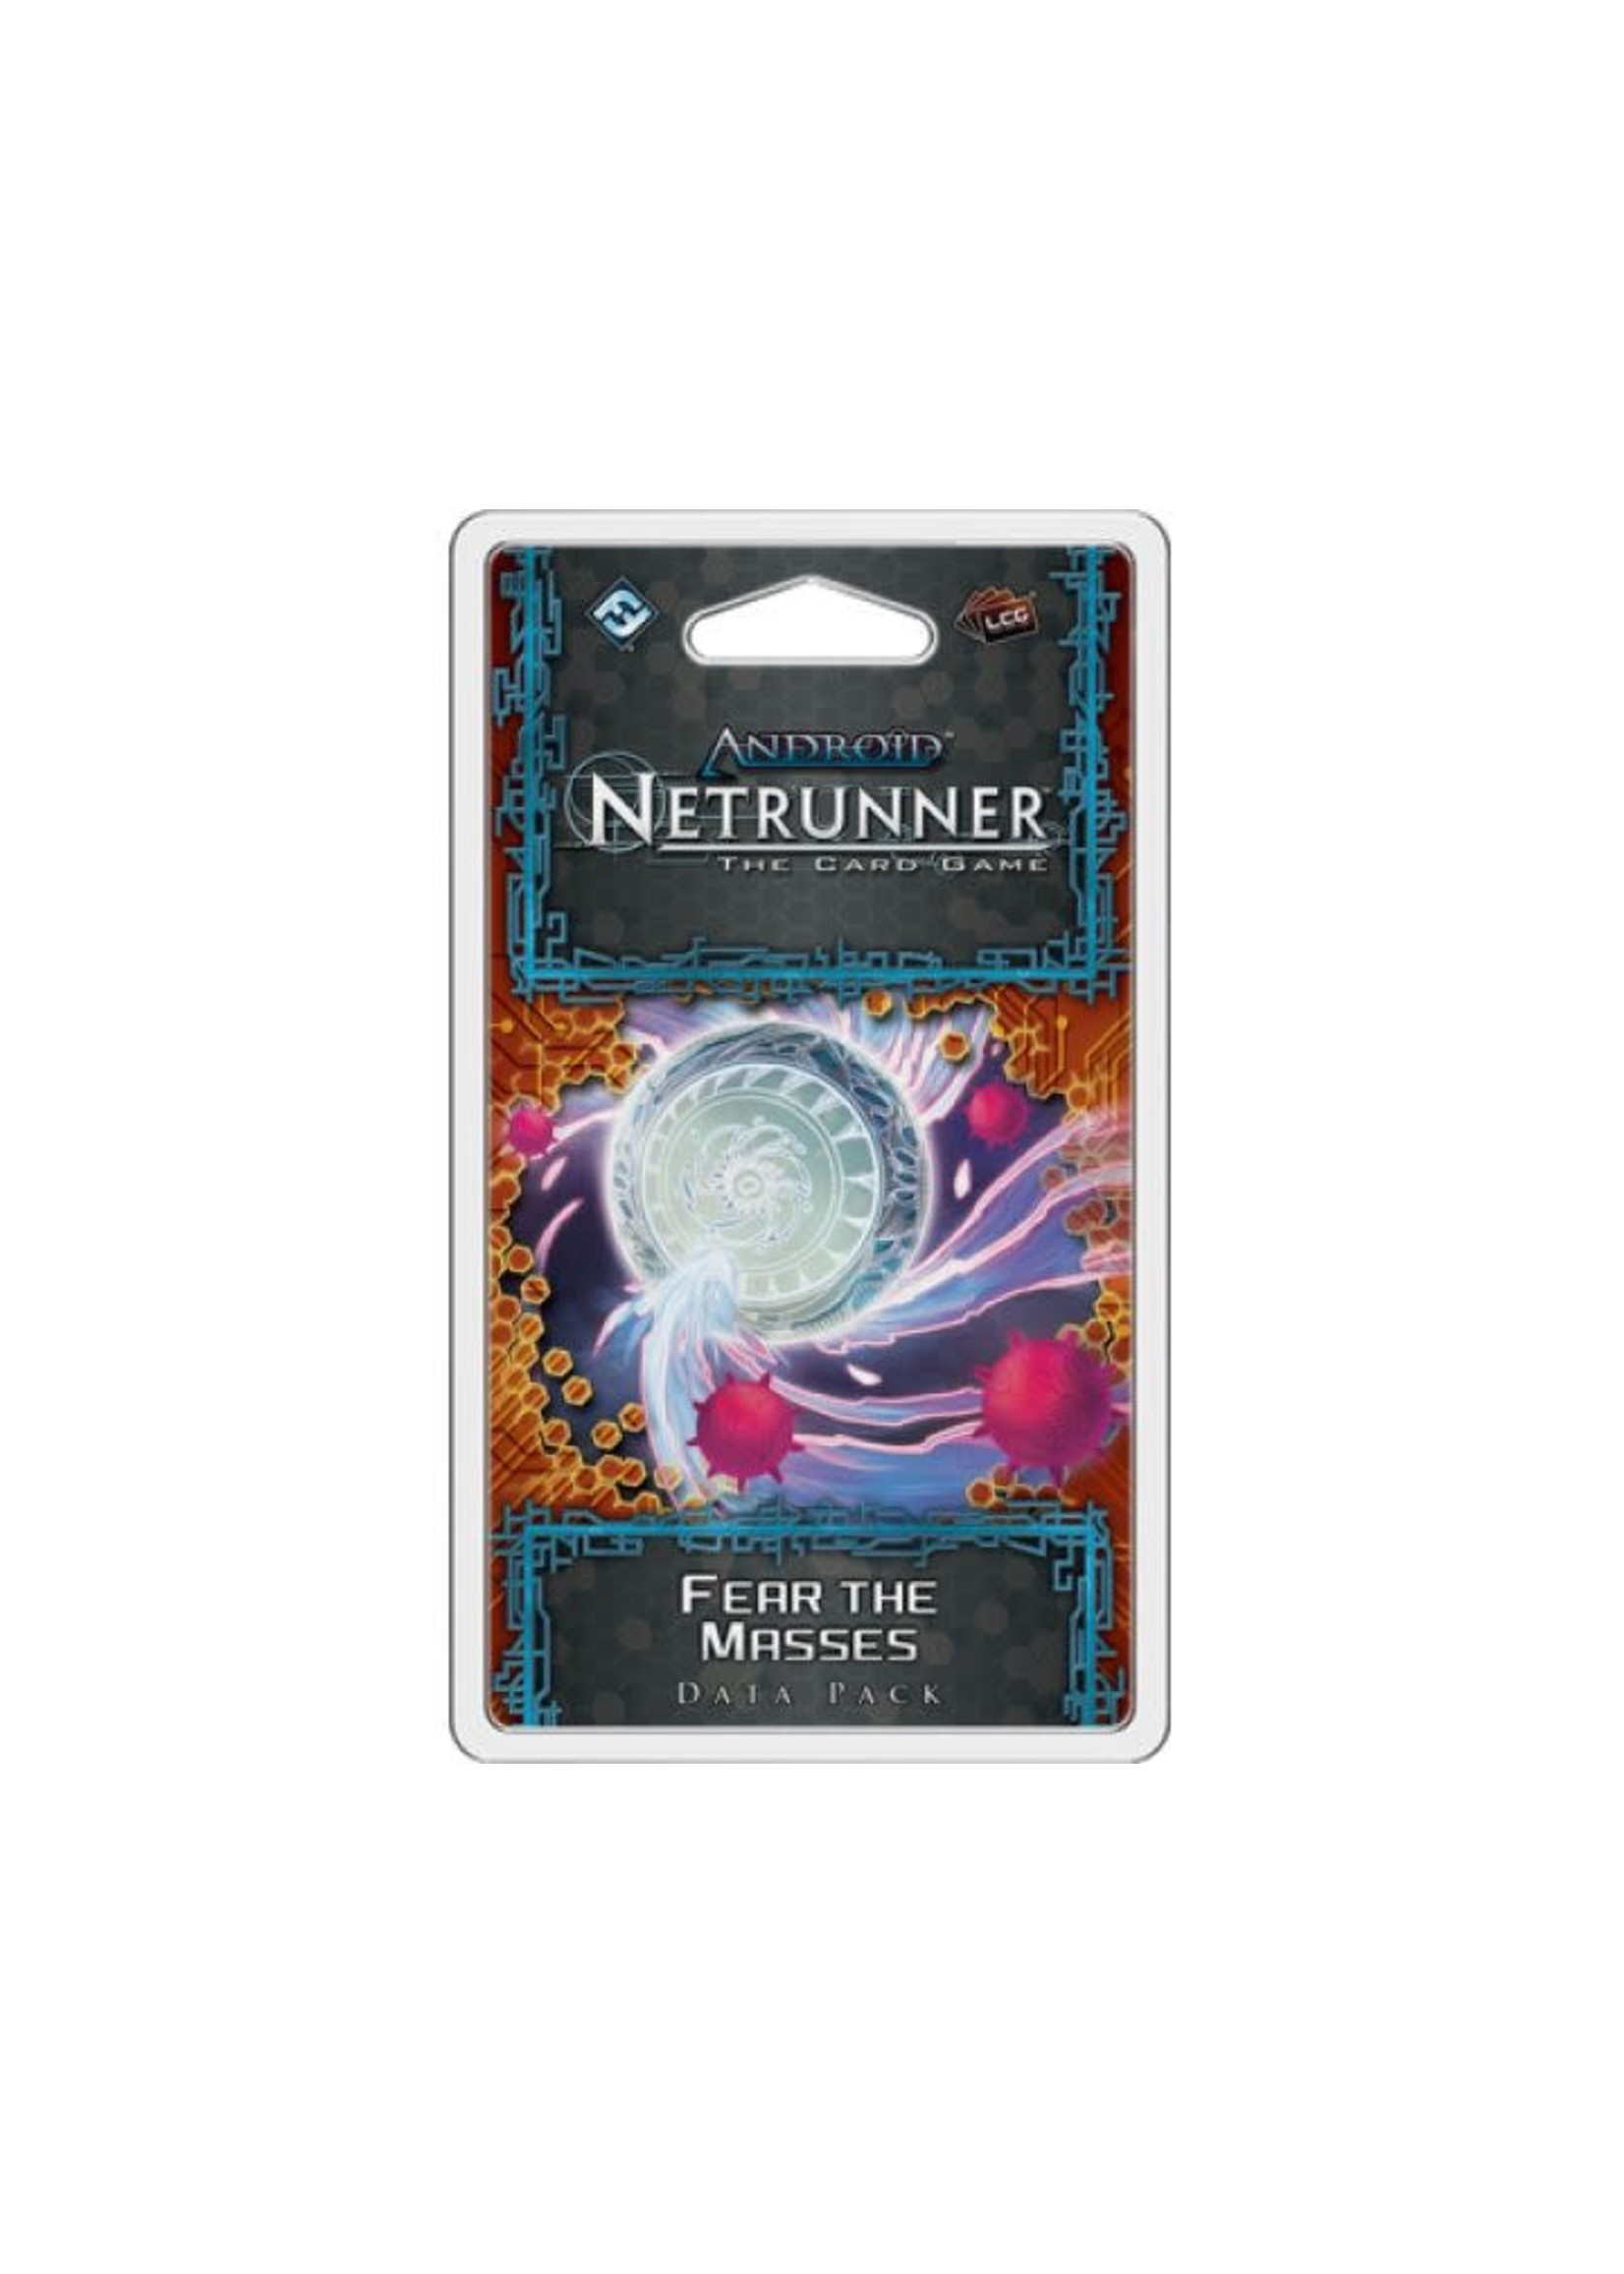 Android Netrunner Fear The Masses